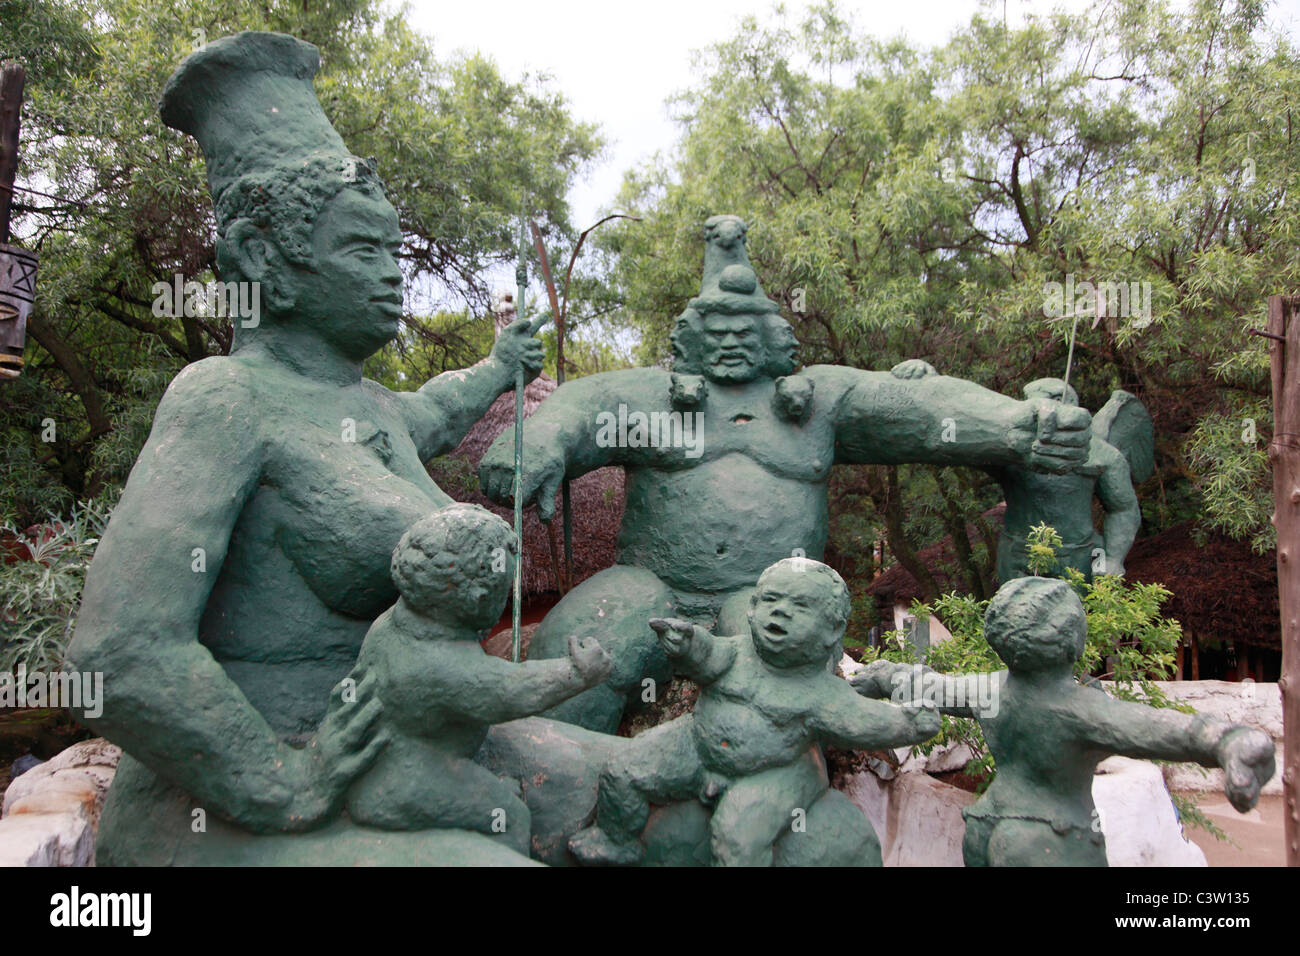 The Credo Mutwa cultural village. Soweto, South Africa. Picture by Zute Lightfoot. Stock Photo